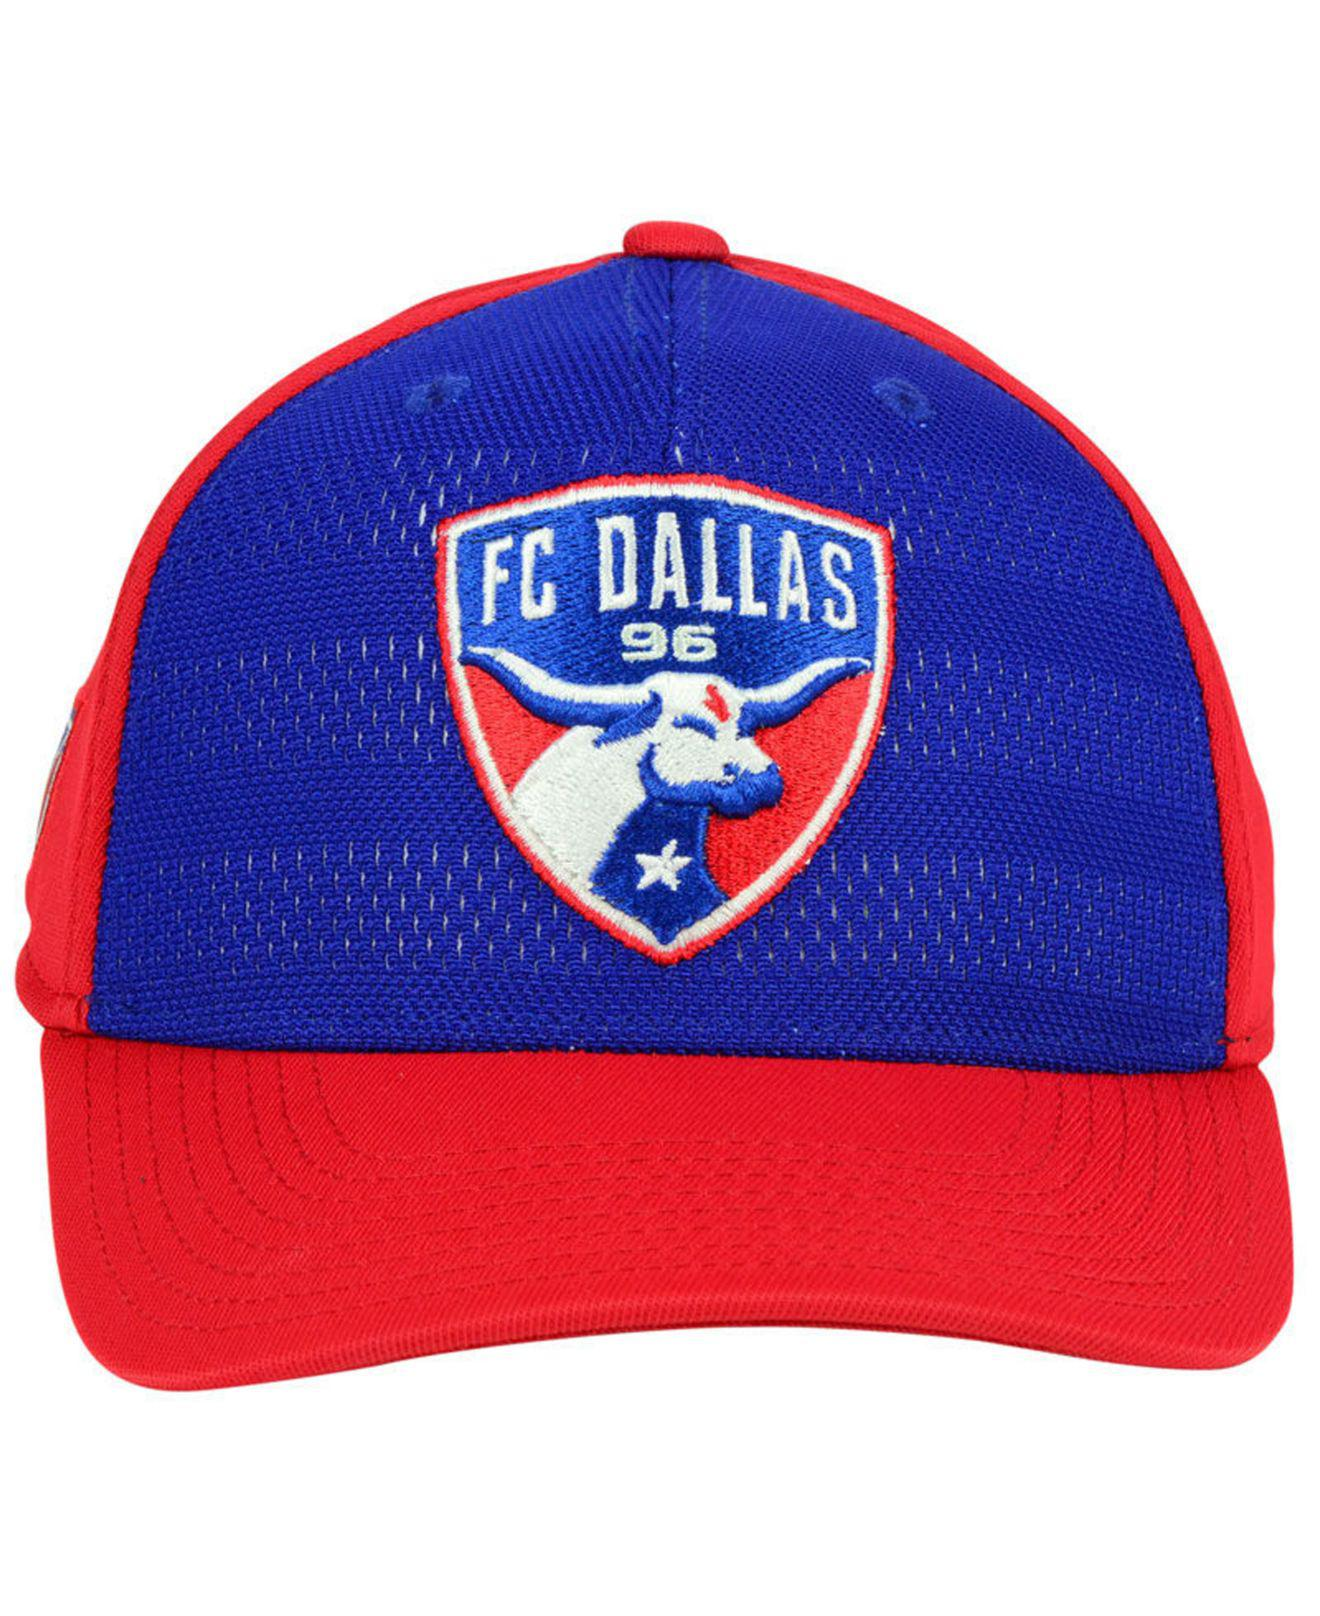 937d43364d3a5 ... red navy iconic adjustable hat b89ce f7689  reduced lyst adidas fc  dallas authentic flex cap in blue for men 363b4 e172a